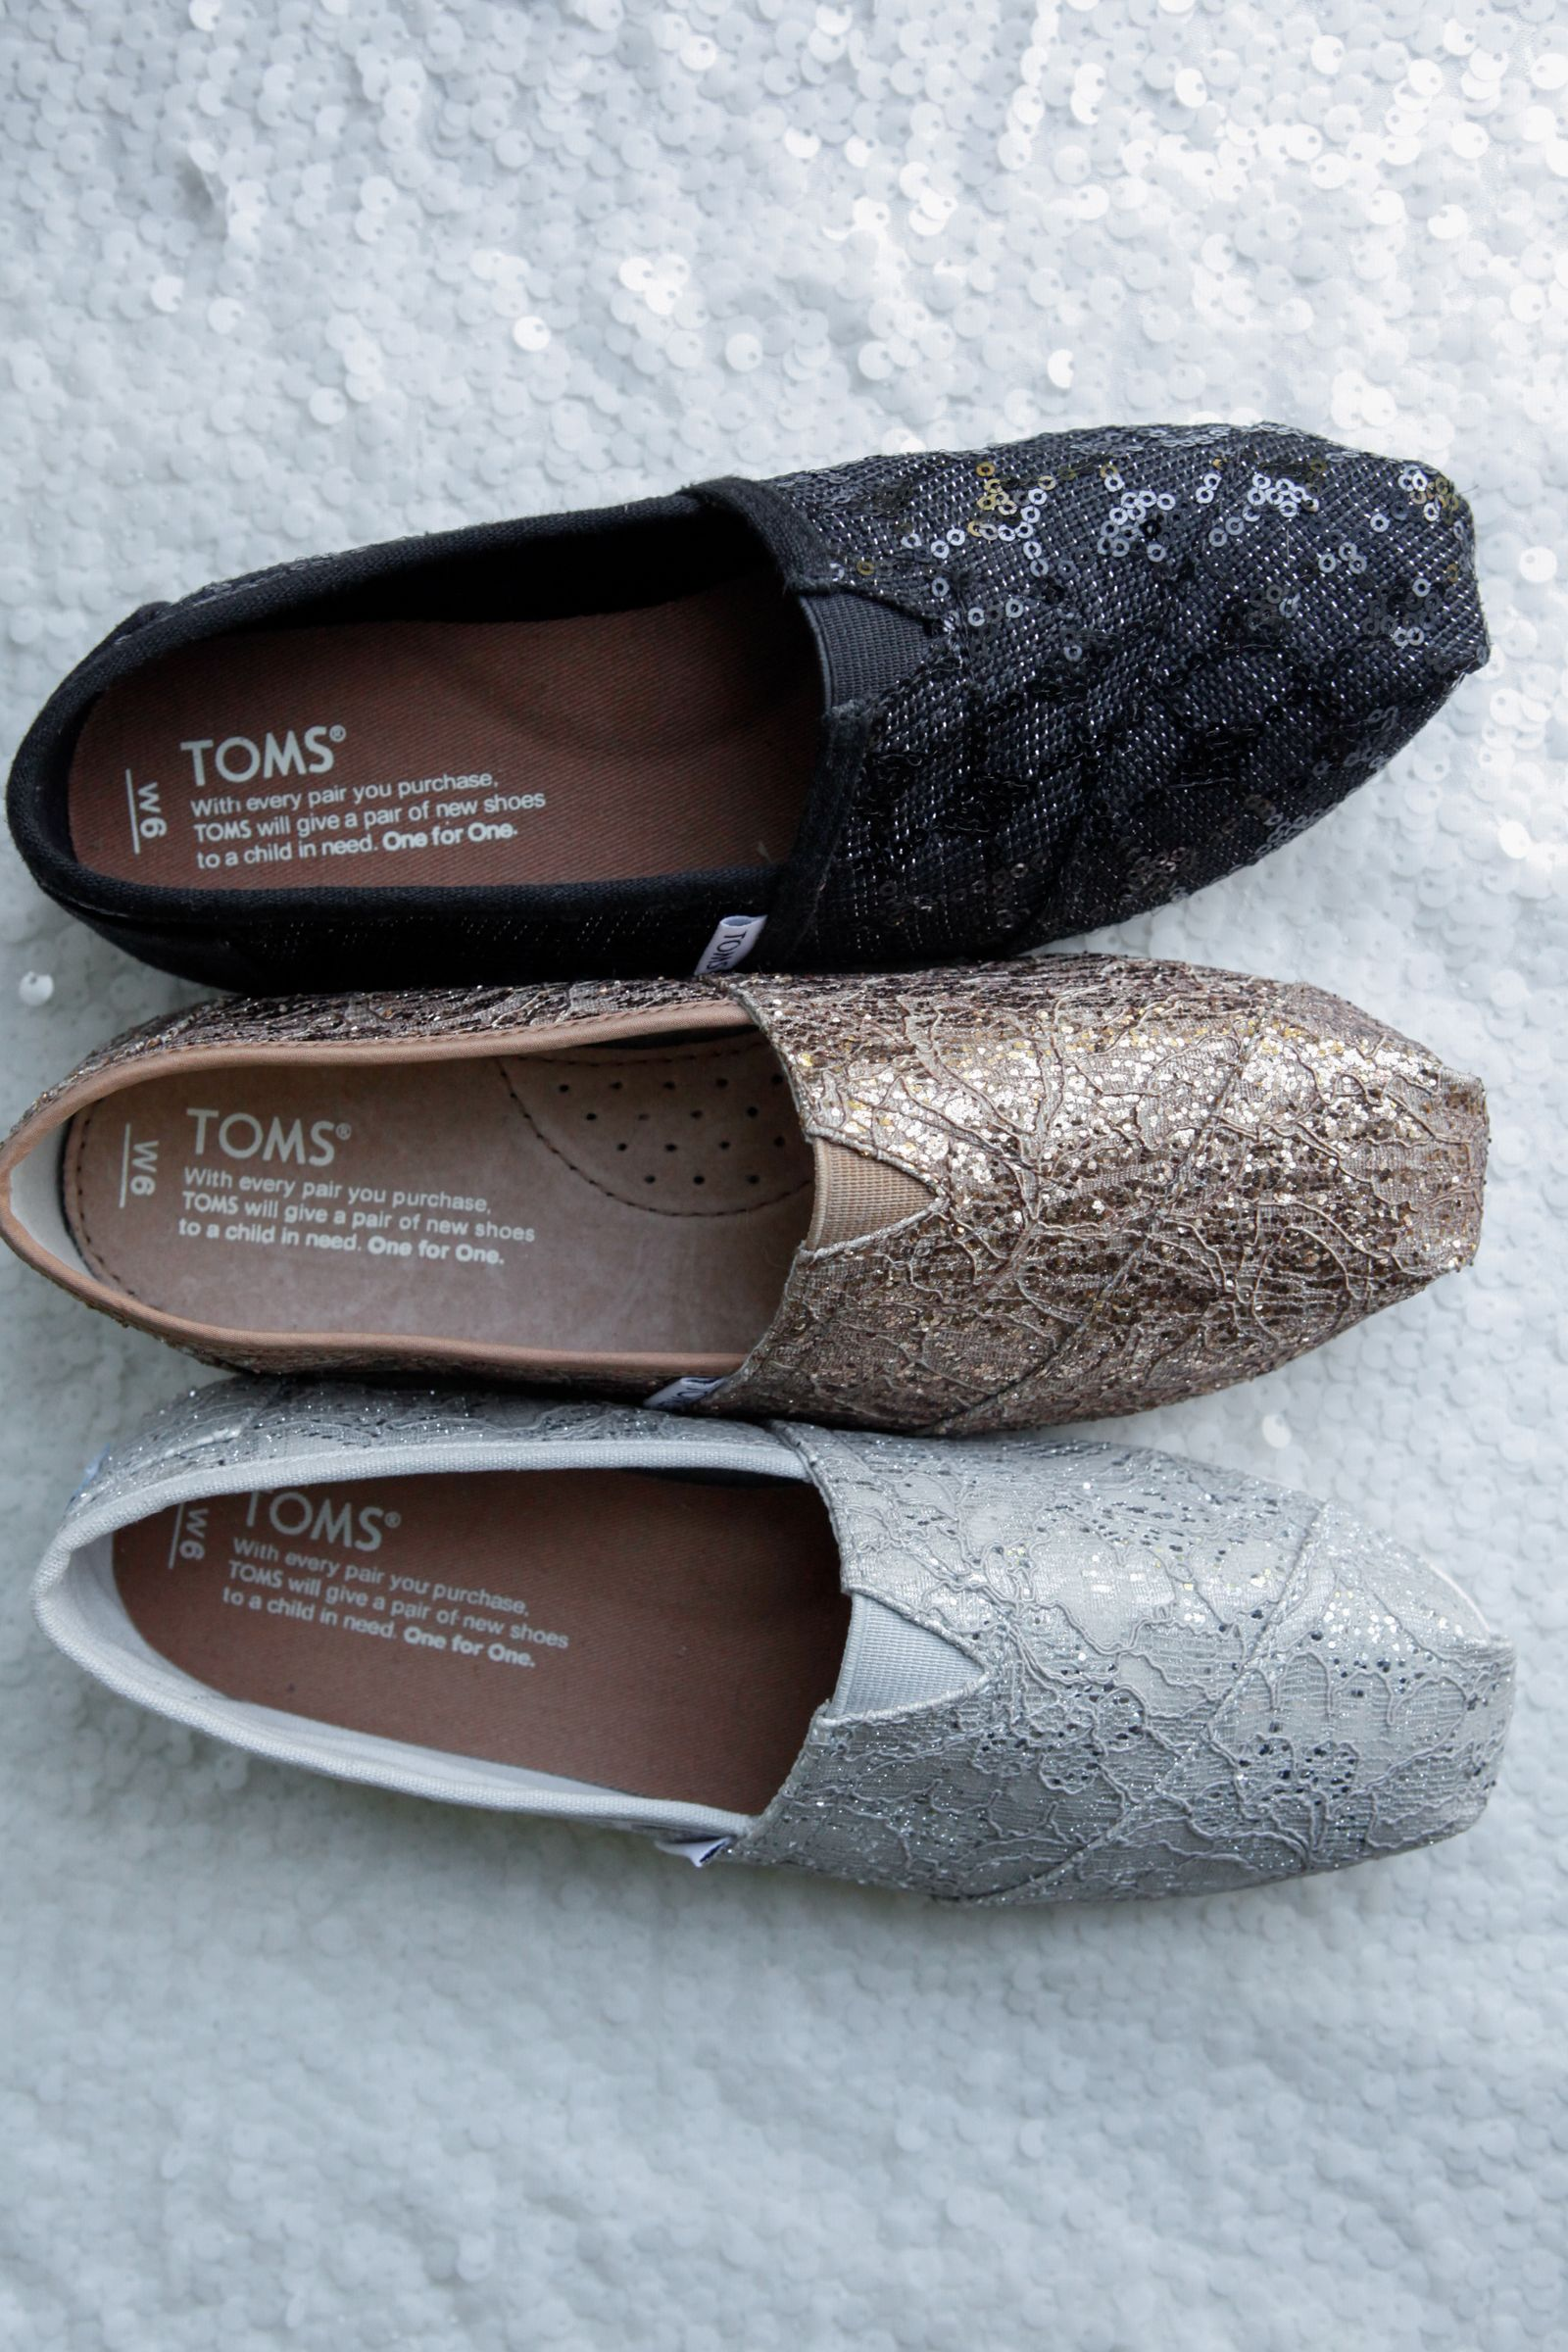 Rose Gold TOMS | Style {Fabulous Flats} | Pinterest | Toms, Rose and Gold